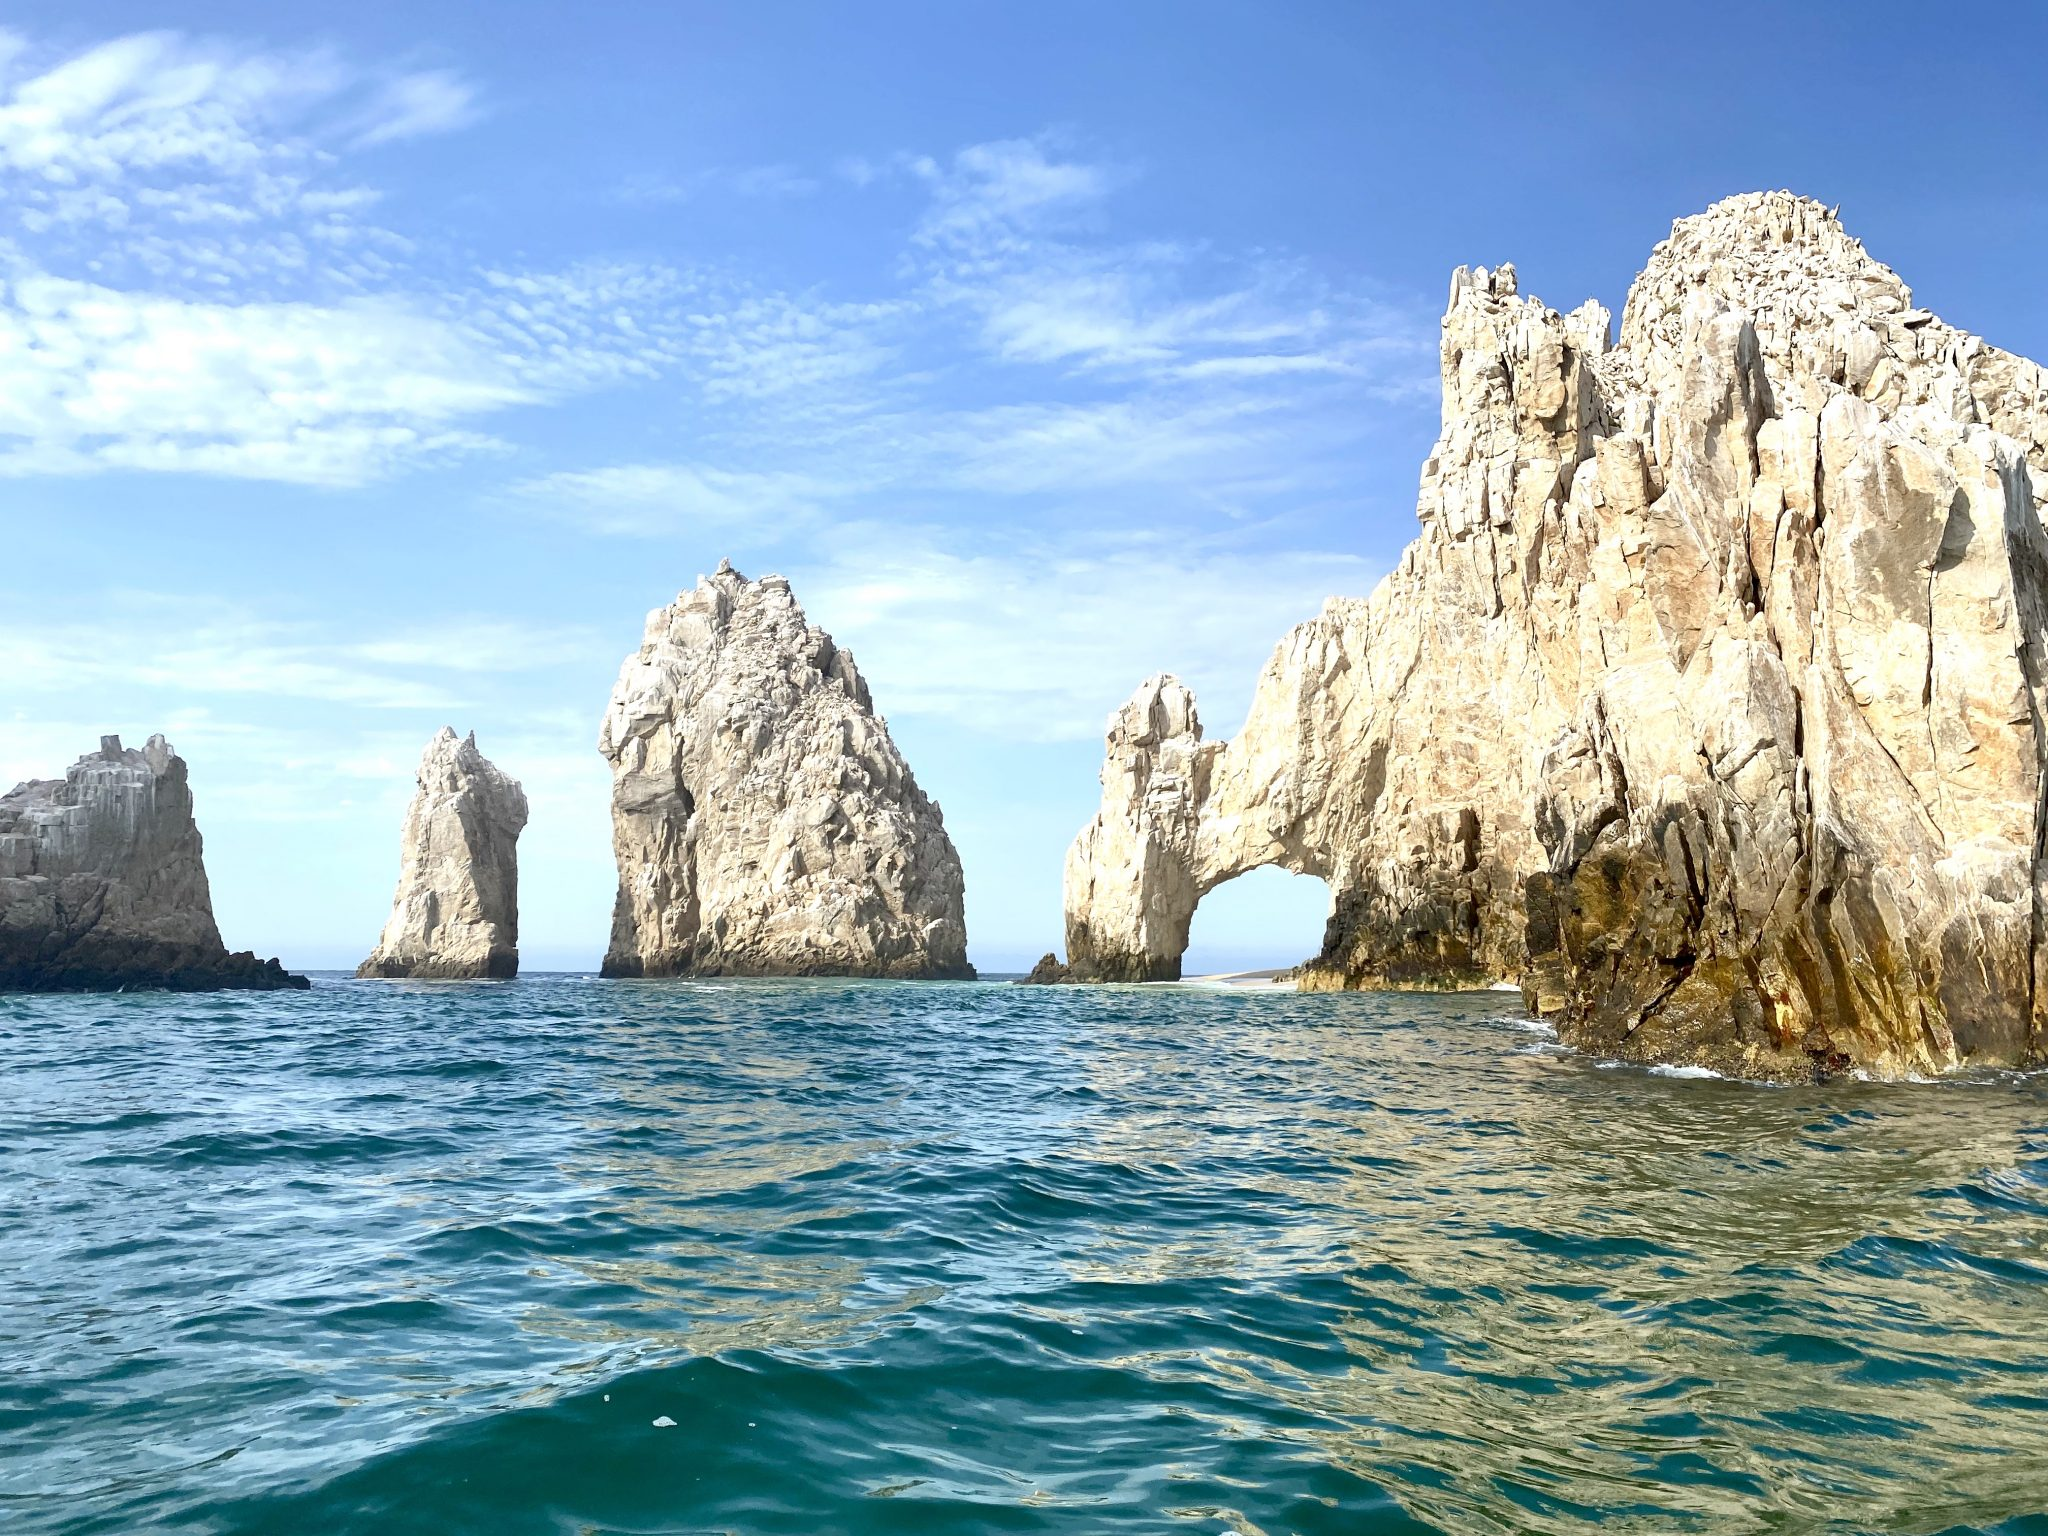 Los Arcos rock formations with arches and caves at the tip of Baja California in Cabo San Lucas, Mexico